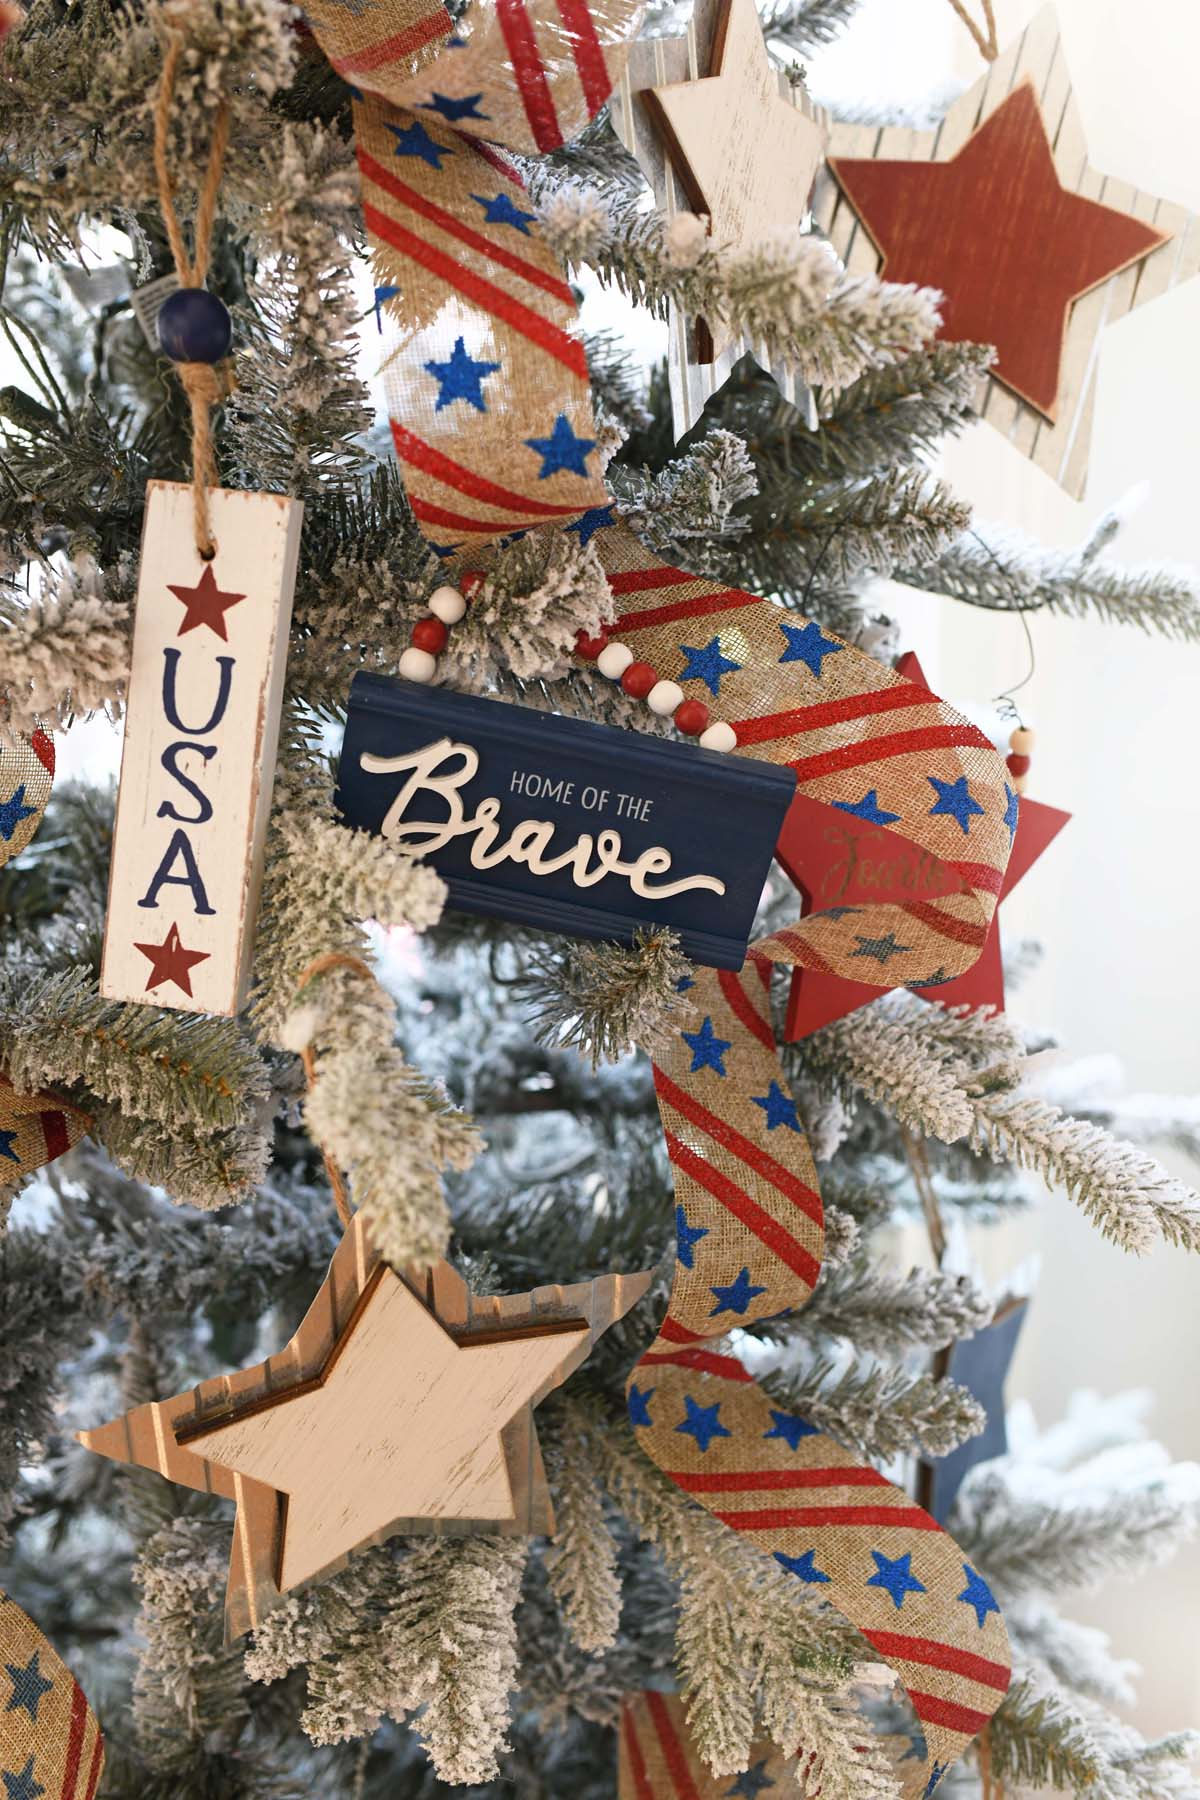 Red, white, and blue rustic ornaments on a tree.